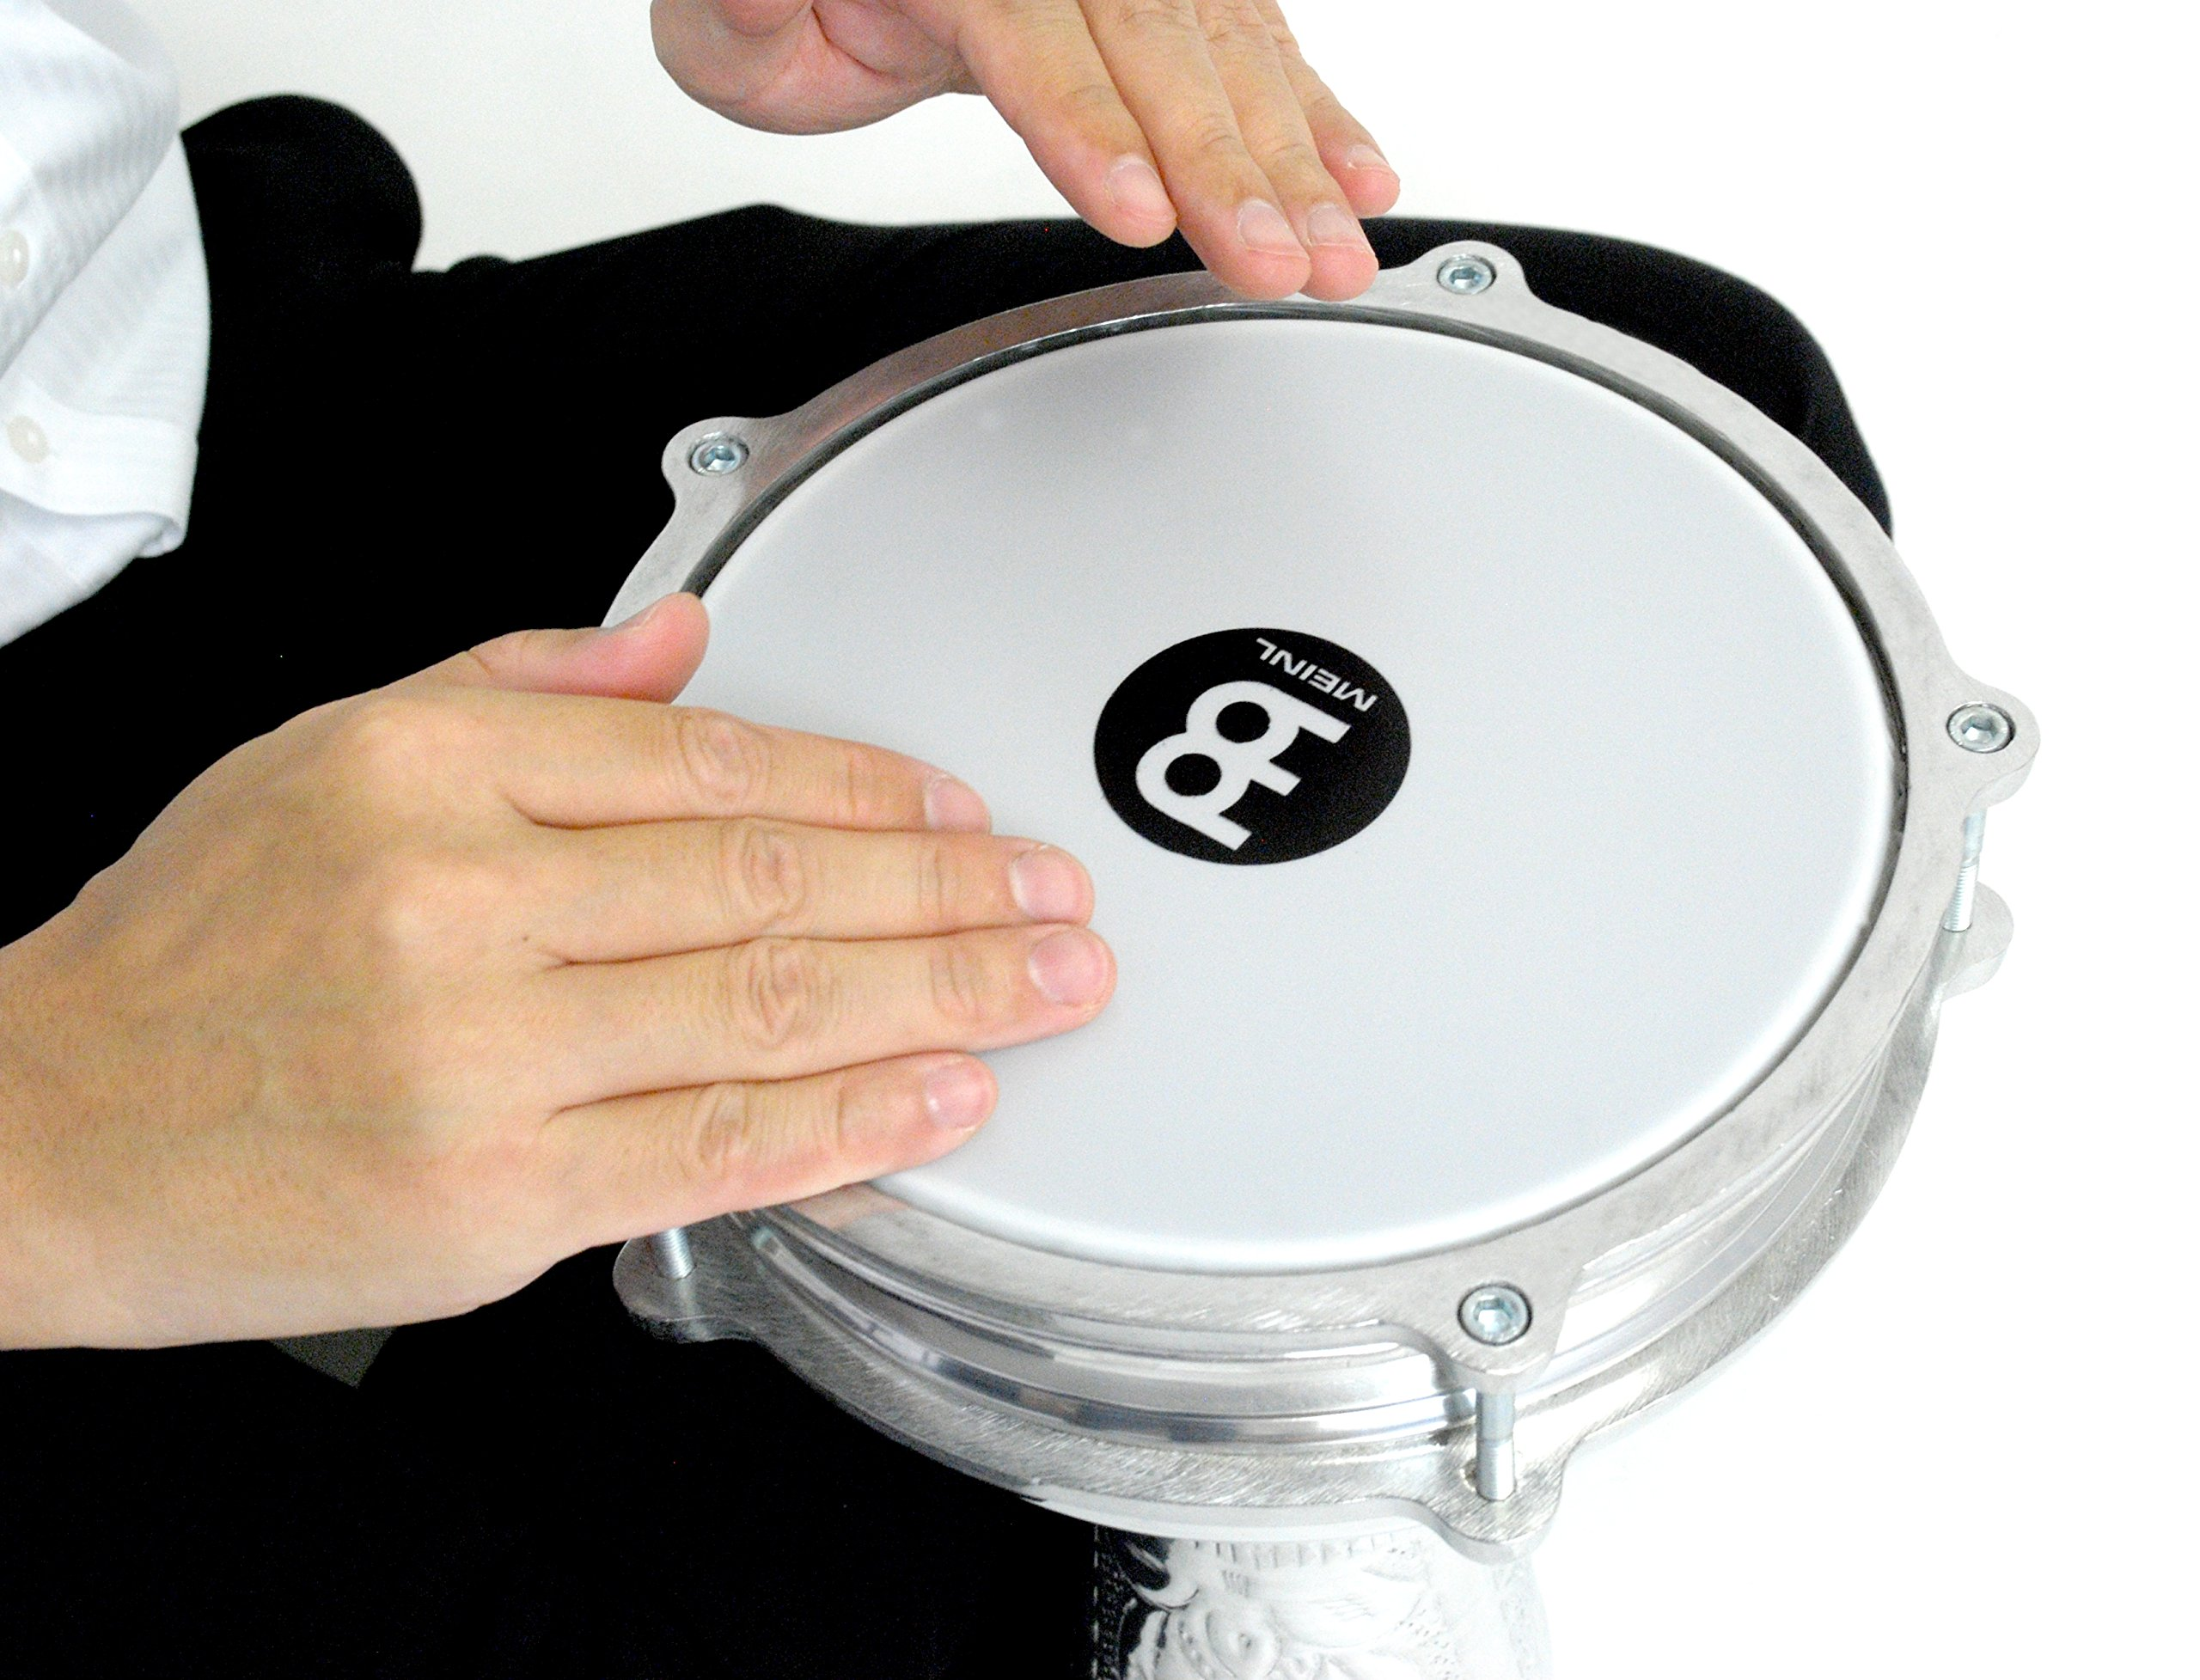 Meinl Percussion Darbuka with Hand Hammered Aluminum Shell-Made in Turkey-8'' Tunable Synthetic Head, 2-Year Warranty (HE-114) by Meinl Percussion (Image #2)